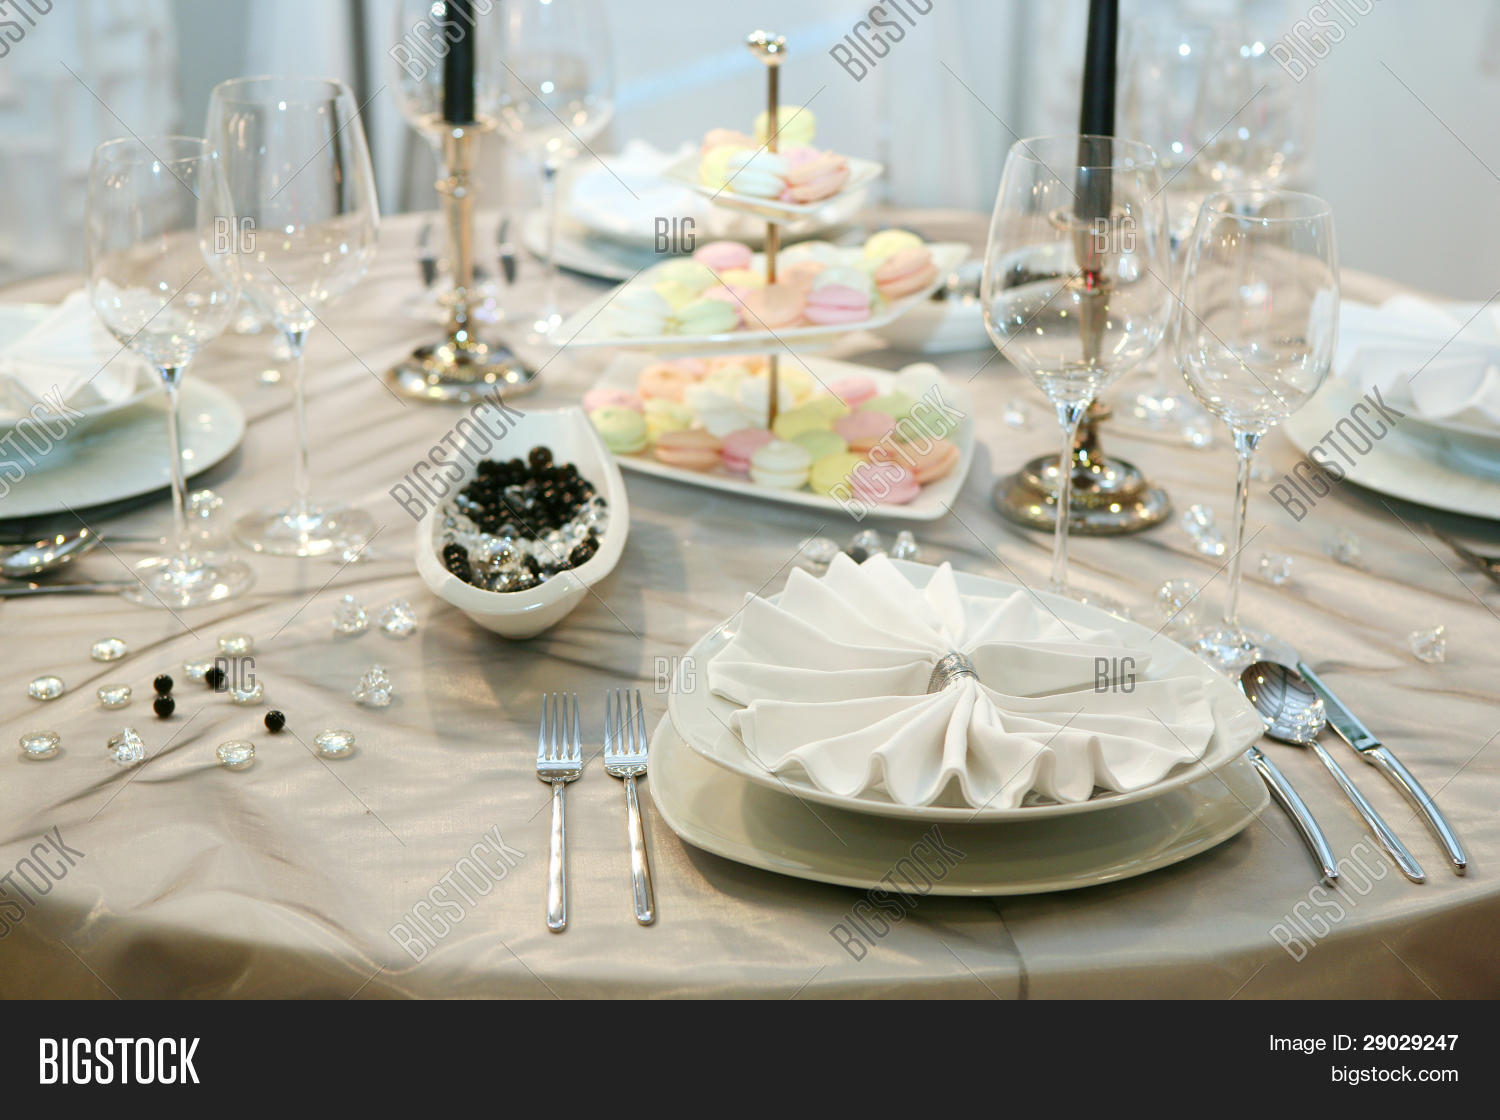 Elegant dinner table setting - Table Setting For Elegant Wedding Dinner